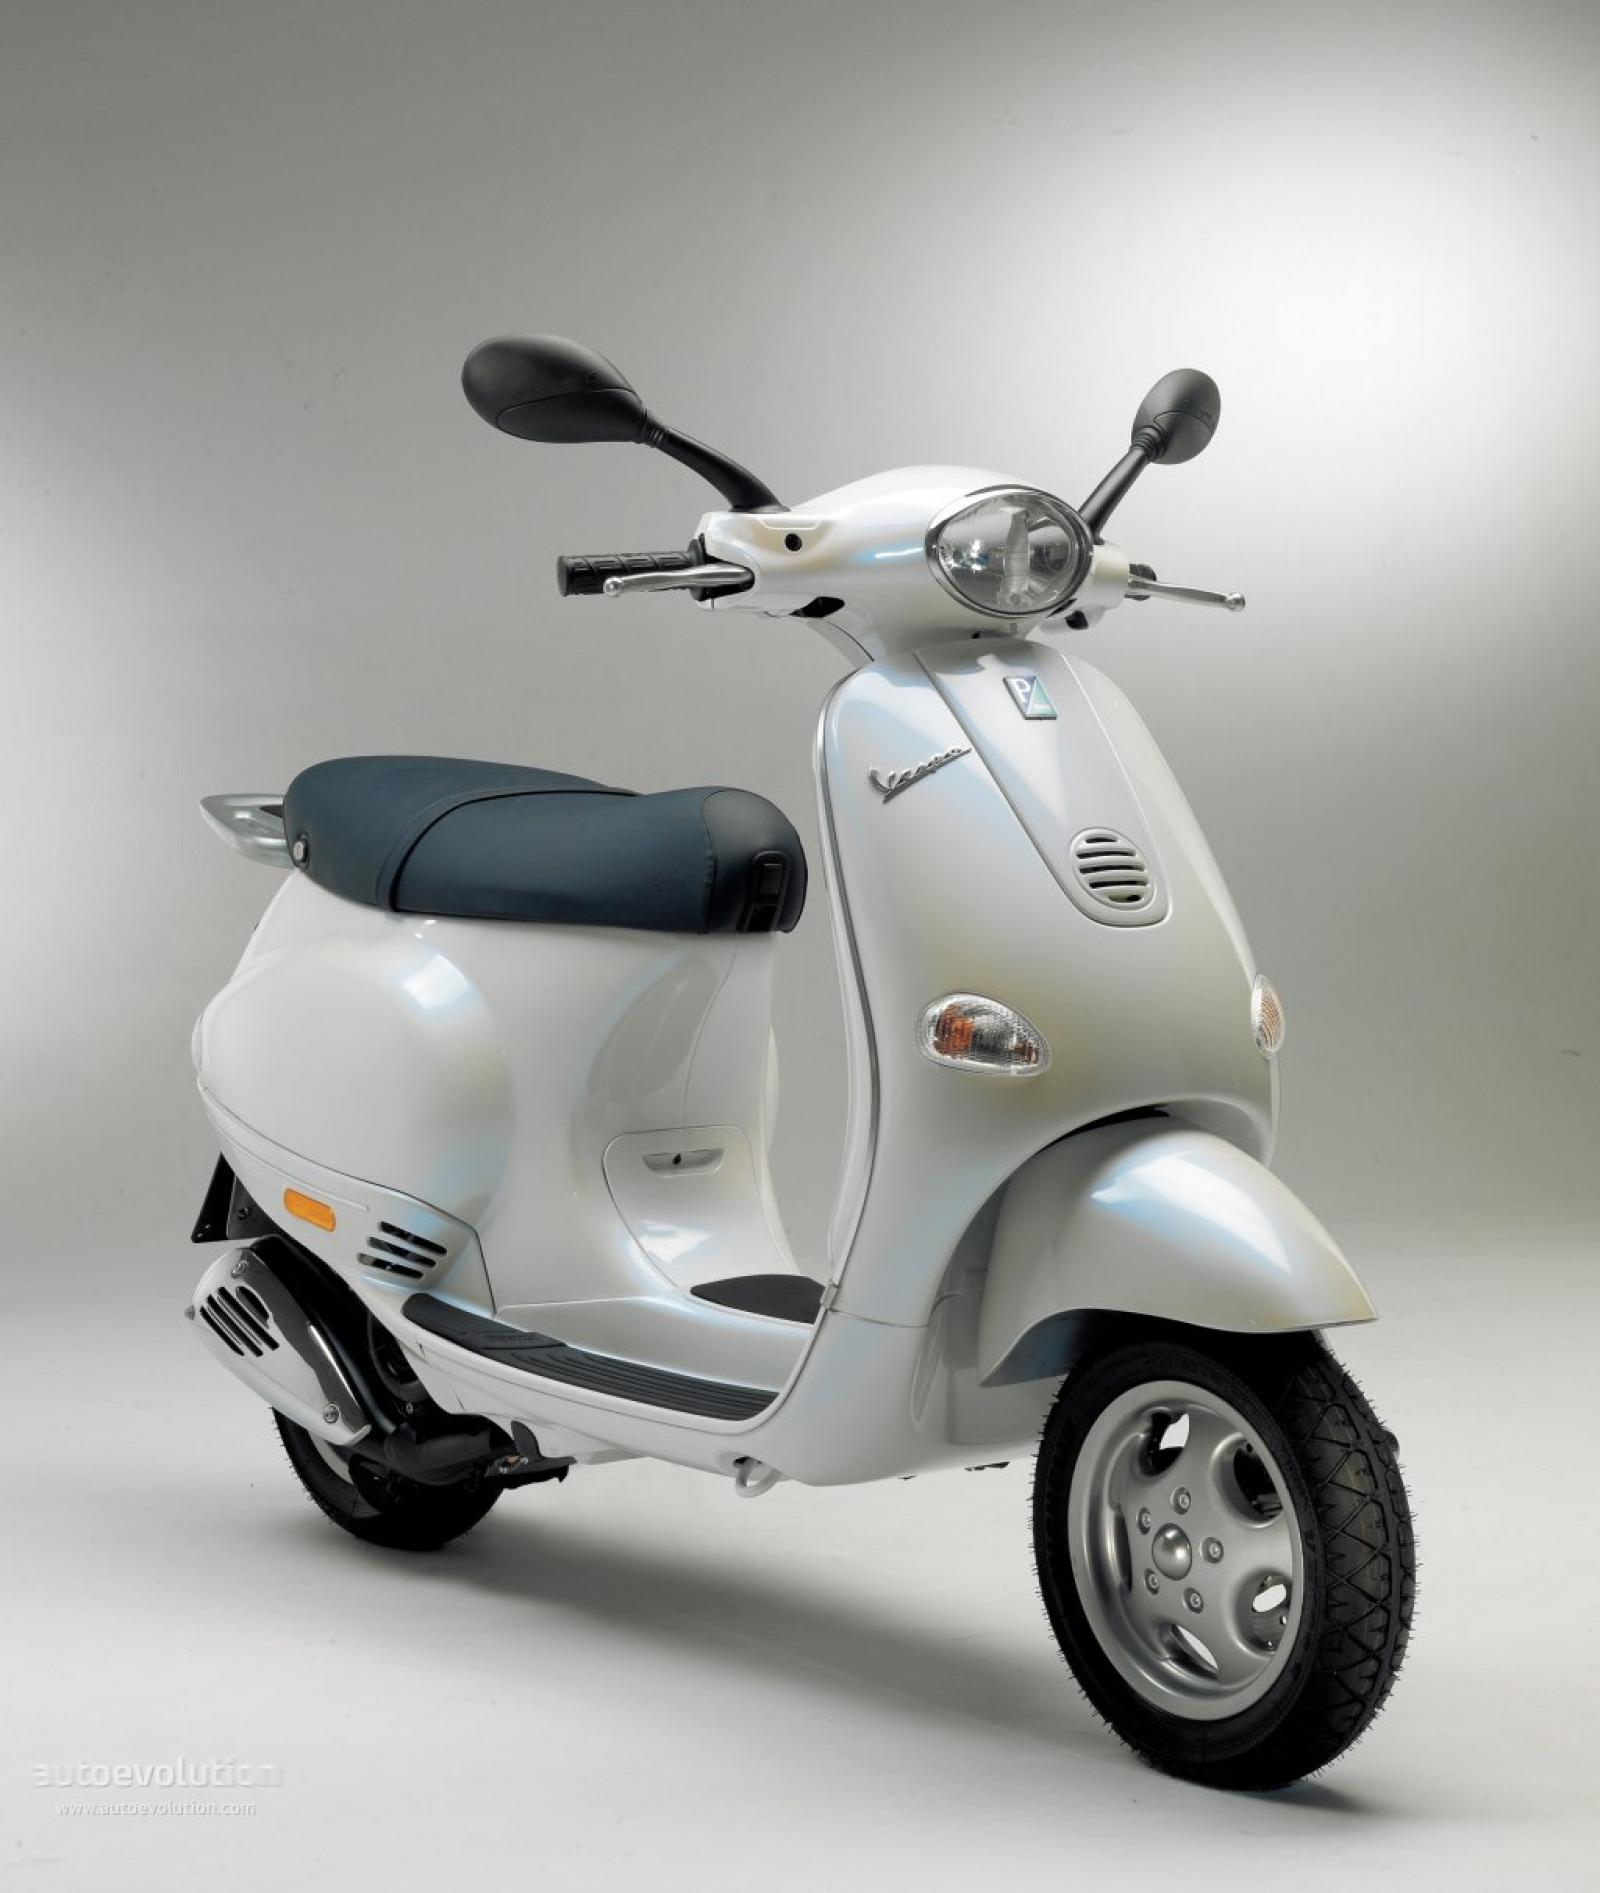 Vespa Manual Et4 1979 Px200 Fuse Box Array 50 Pics Specs And List Of Seriess By Year Rh Onlymotorbikes Com